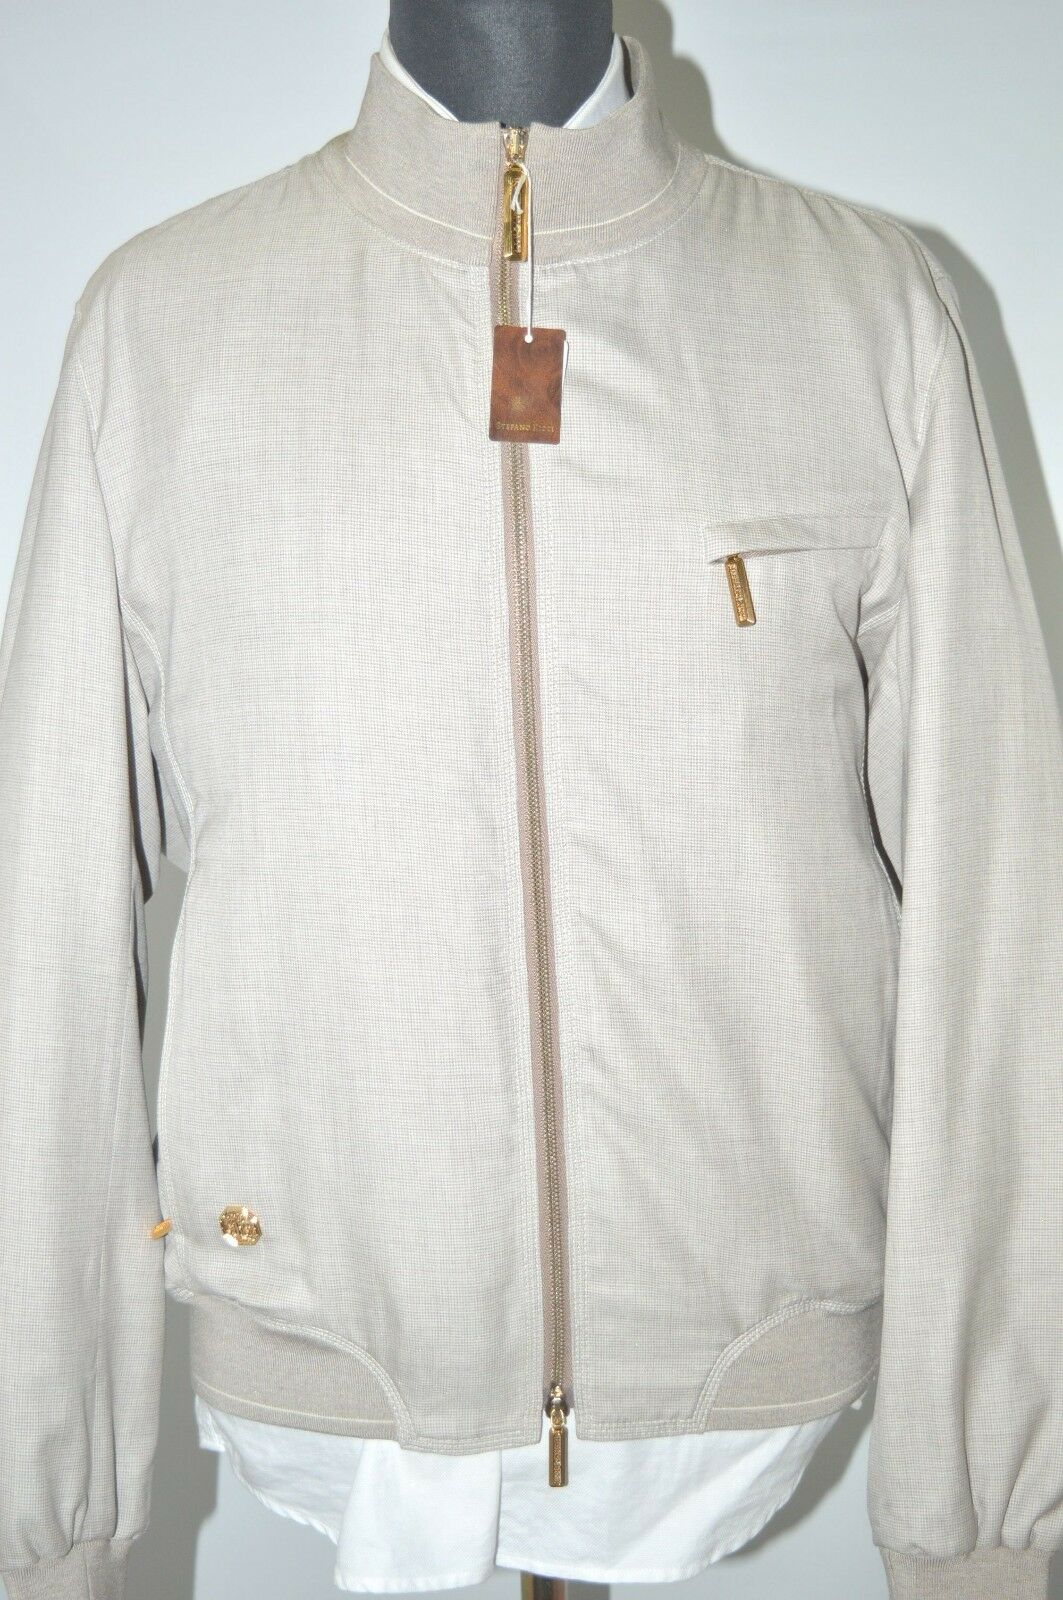 NEW 7550,00 $ STEFANO RICCI  Outwear Wool Silk Size Us M Eu 50 (G15)